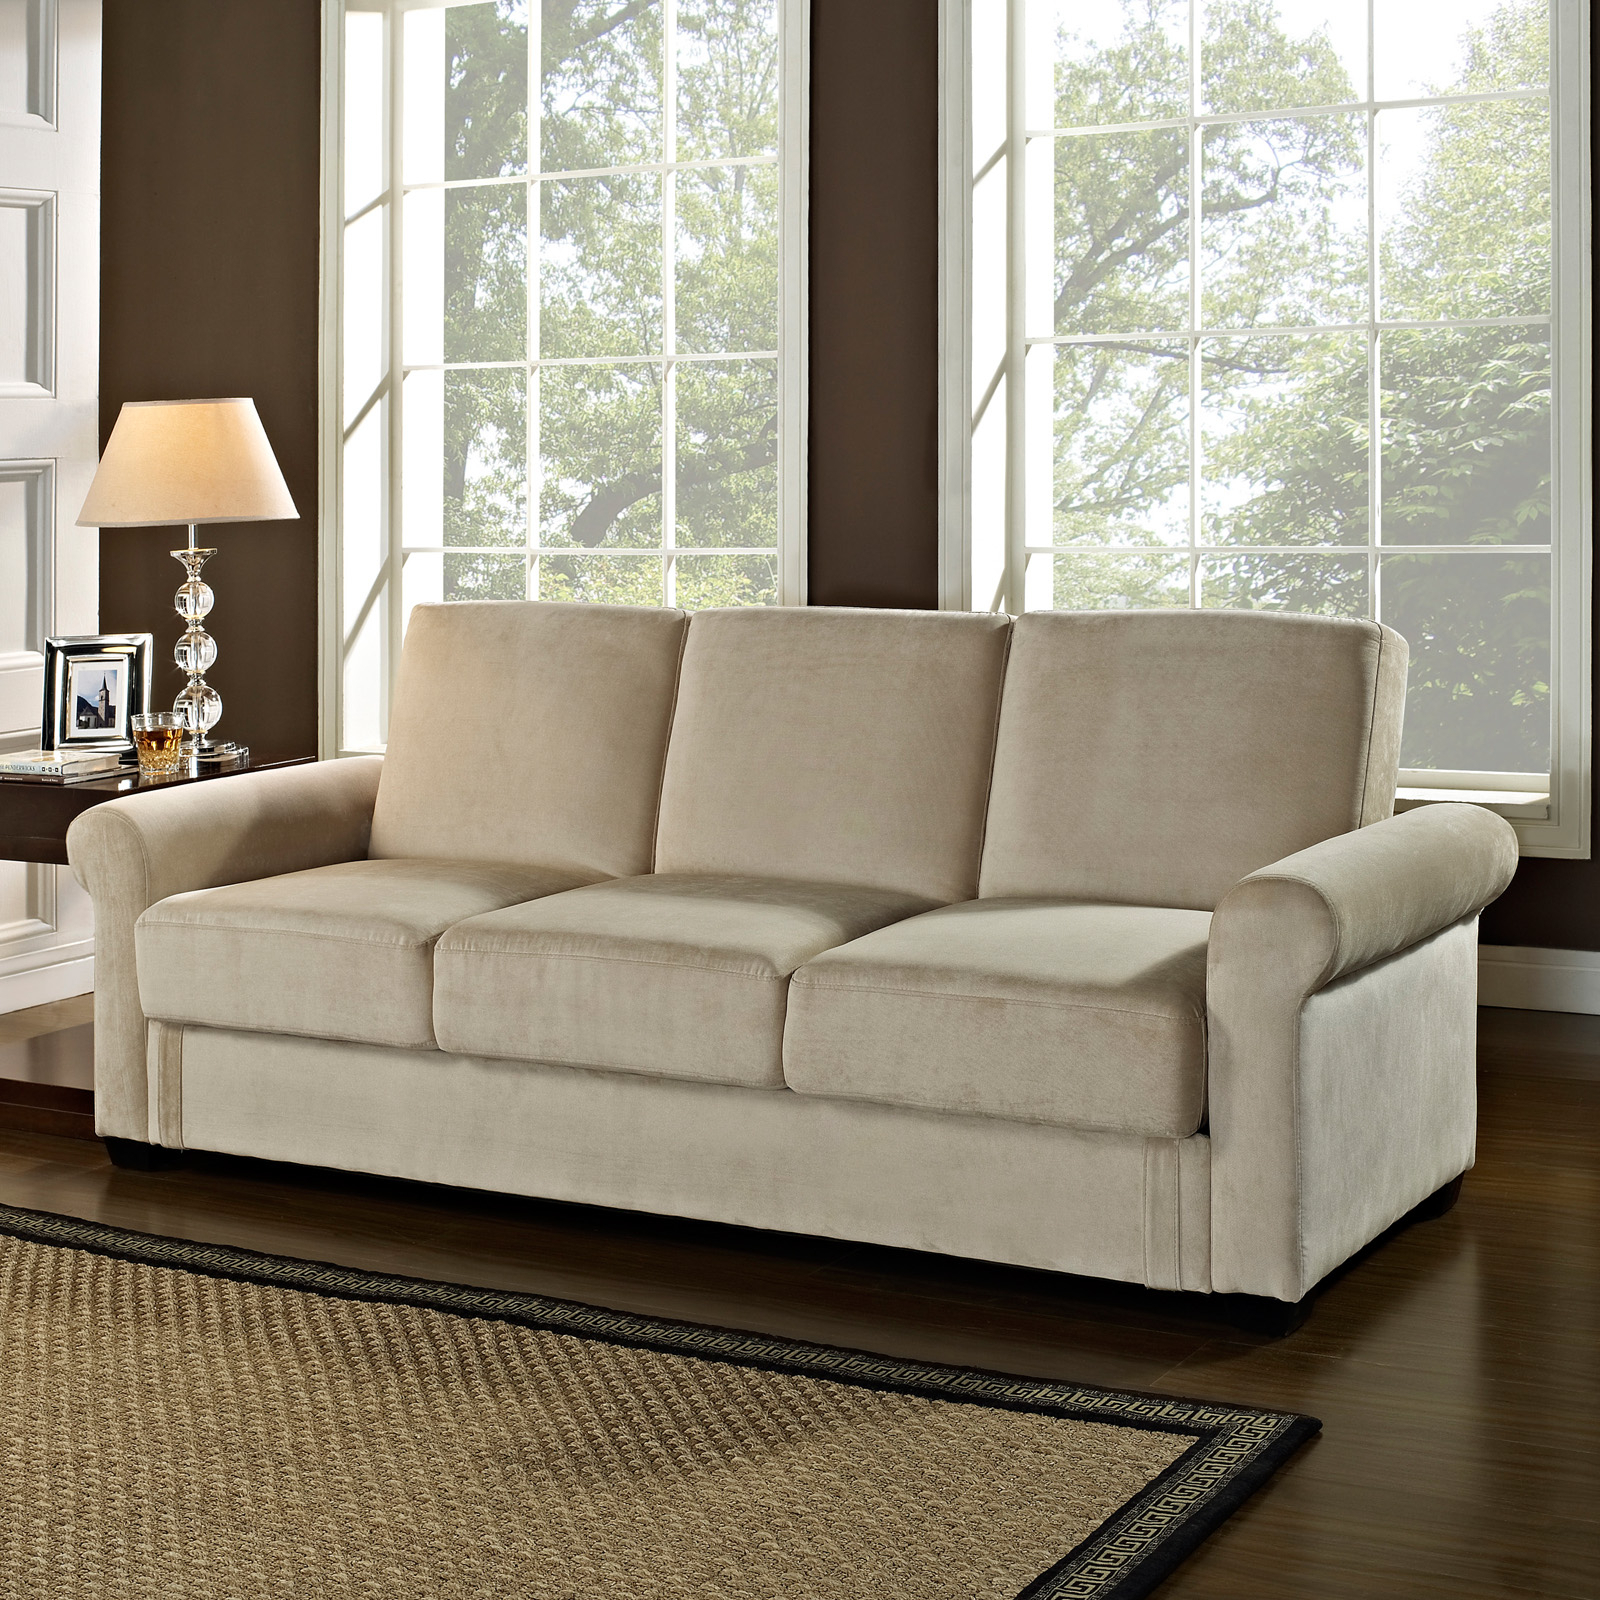 Serta Dream Thomas Convertible Sofa – Light Brown – Sofas With Convertible Sectional Sofas (View 6 of 15)